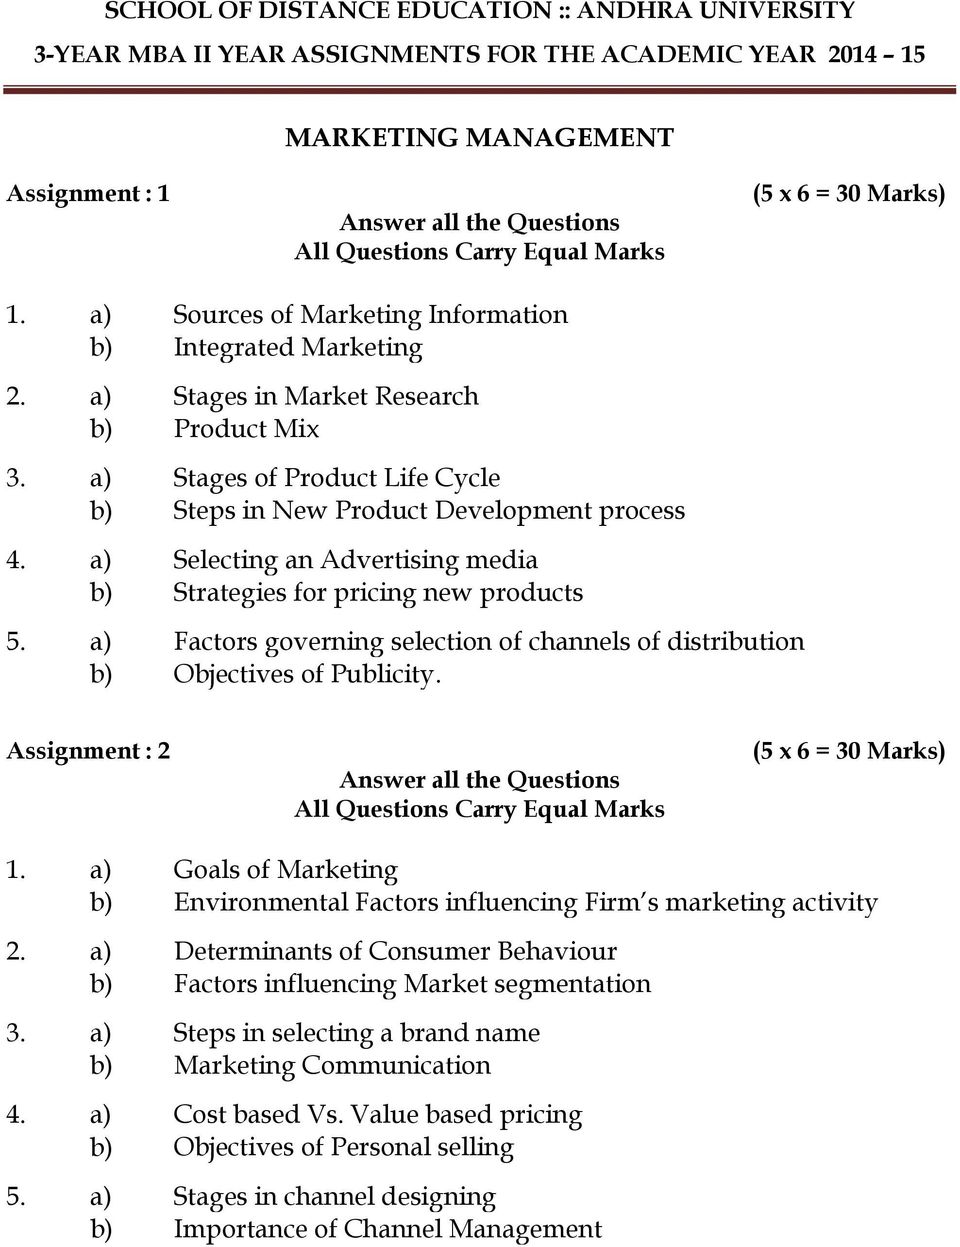 a) Factors governing selection of channels of distribution b) Objectives of Publicity. 1. a) Goals of Marketing b) Environmental Factors influencing Firm s marketing activity 2.